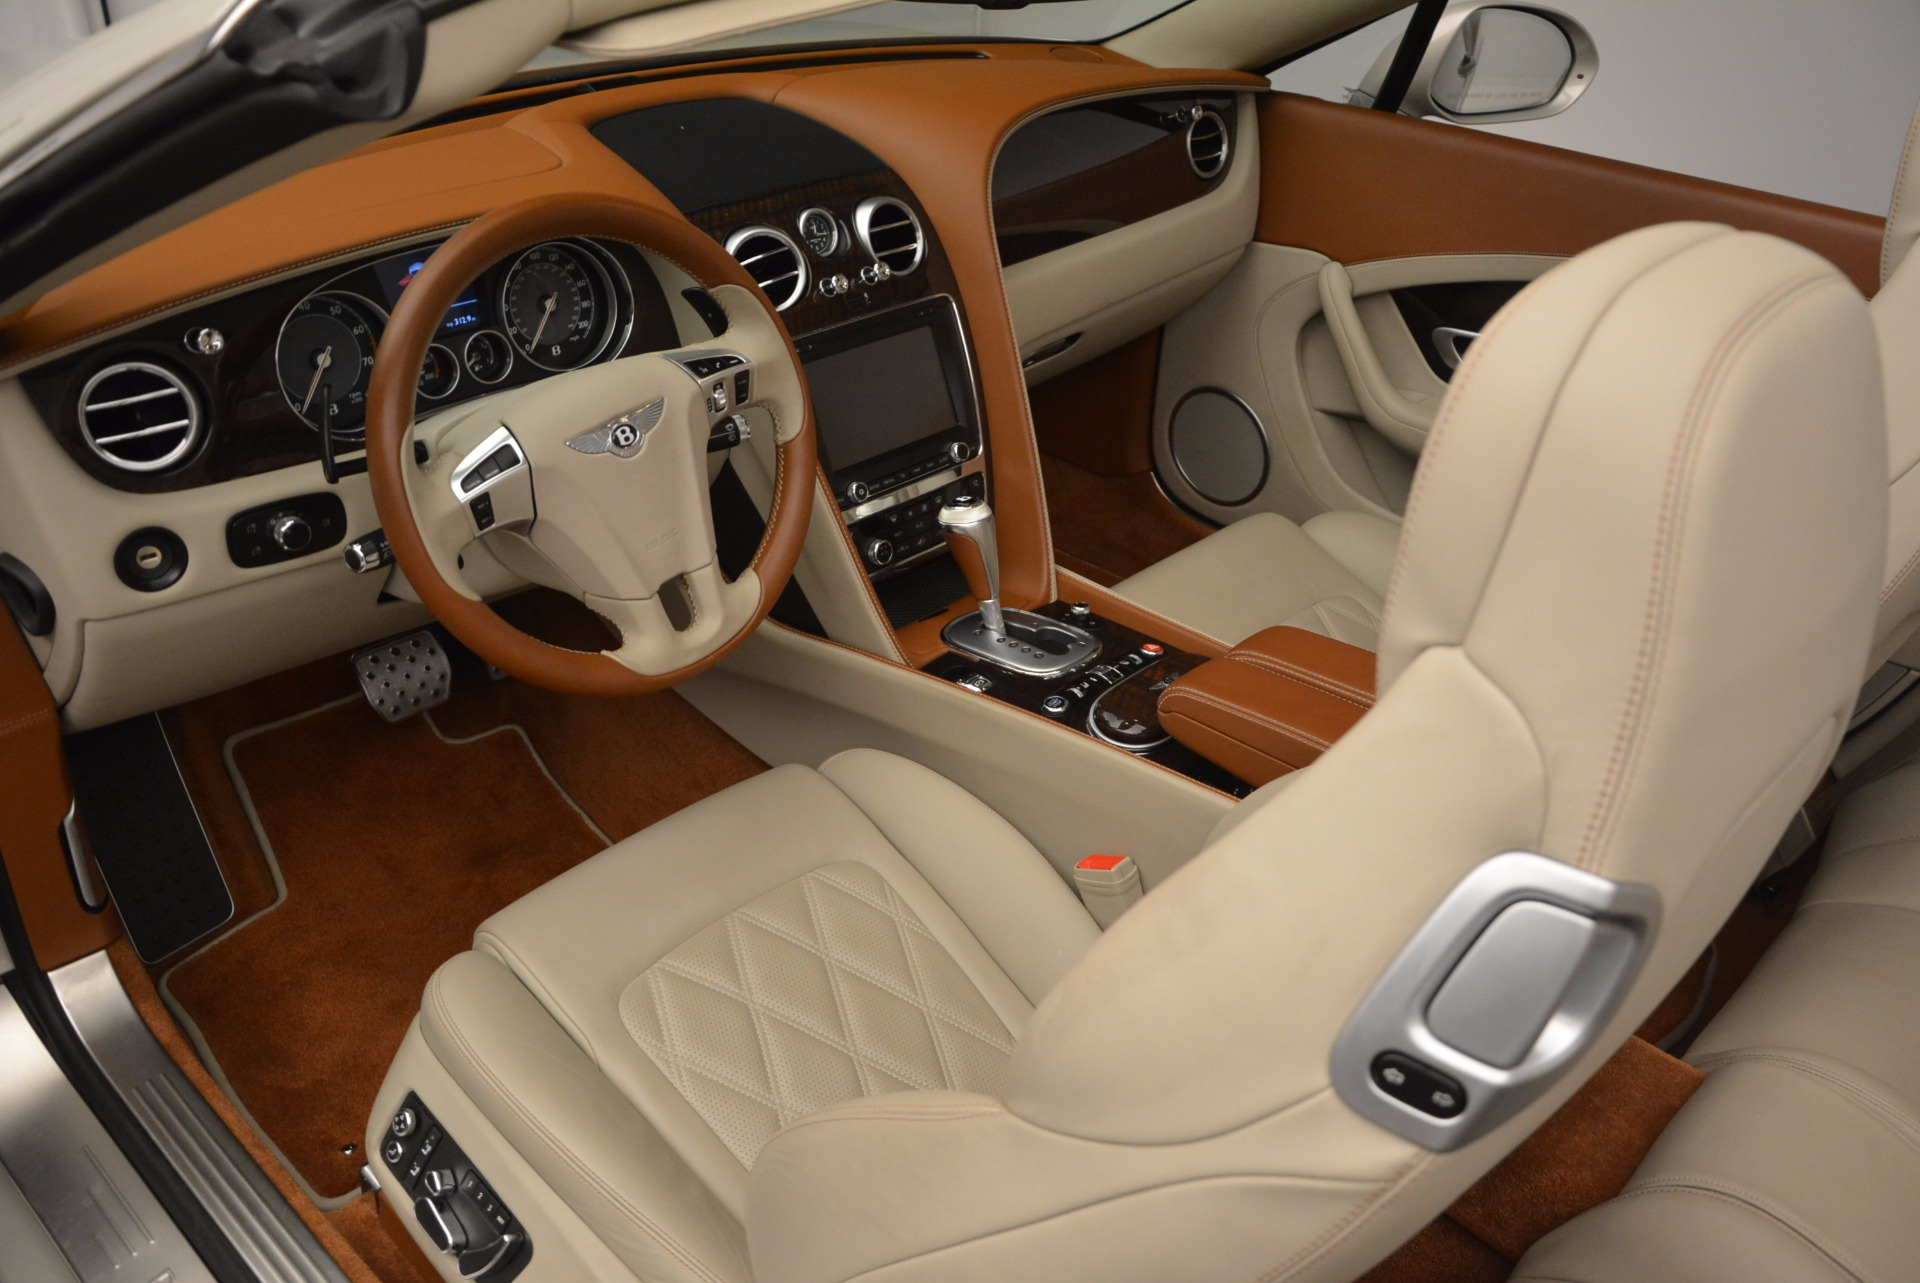 Used 2013 Bentley Continental GTC V8  For Sale In Greenwich, CT. Alfa Romeo of Greenwich, 7108 675_p32